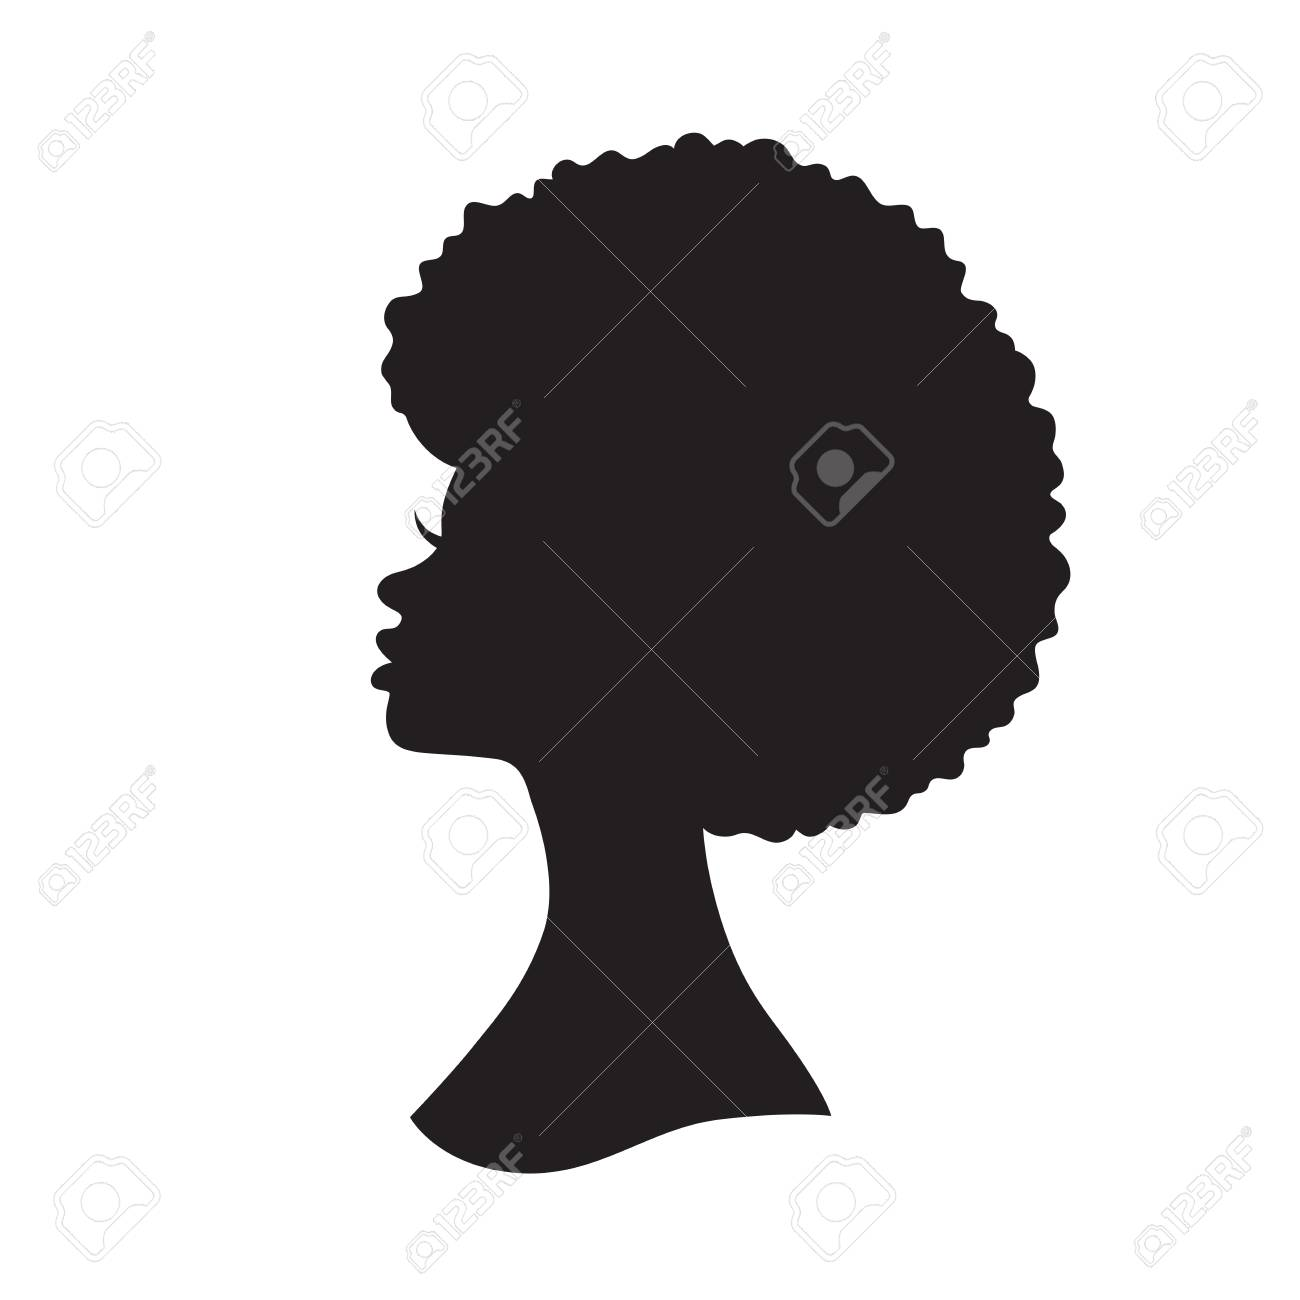 Vector illustration of black woman with afro hair silhouette. Side view of African American woman with natural hair. - 109837271